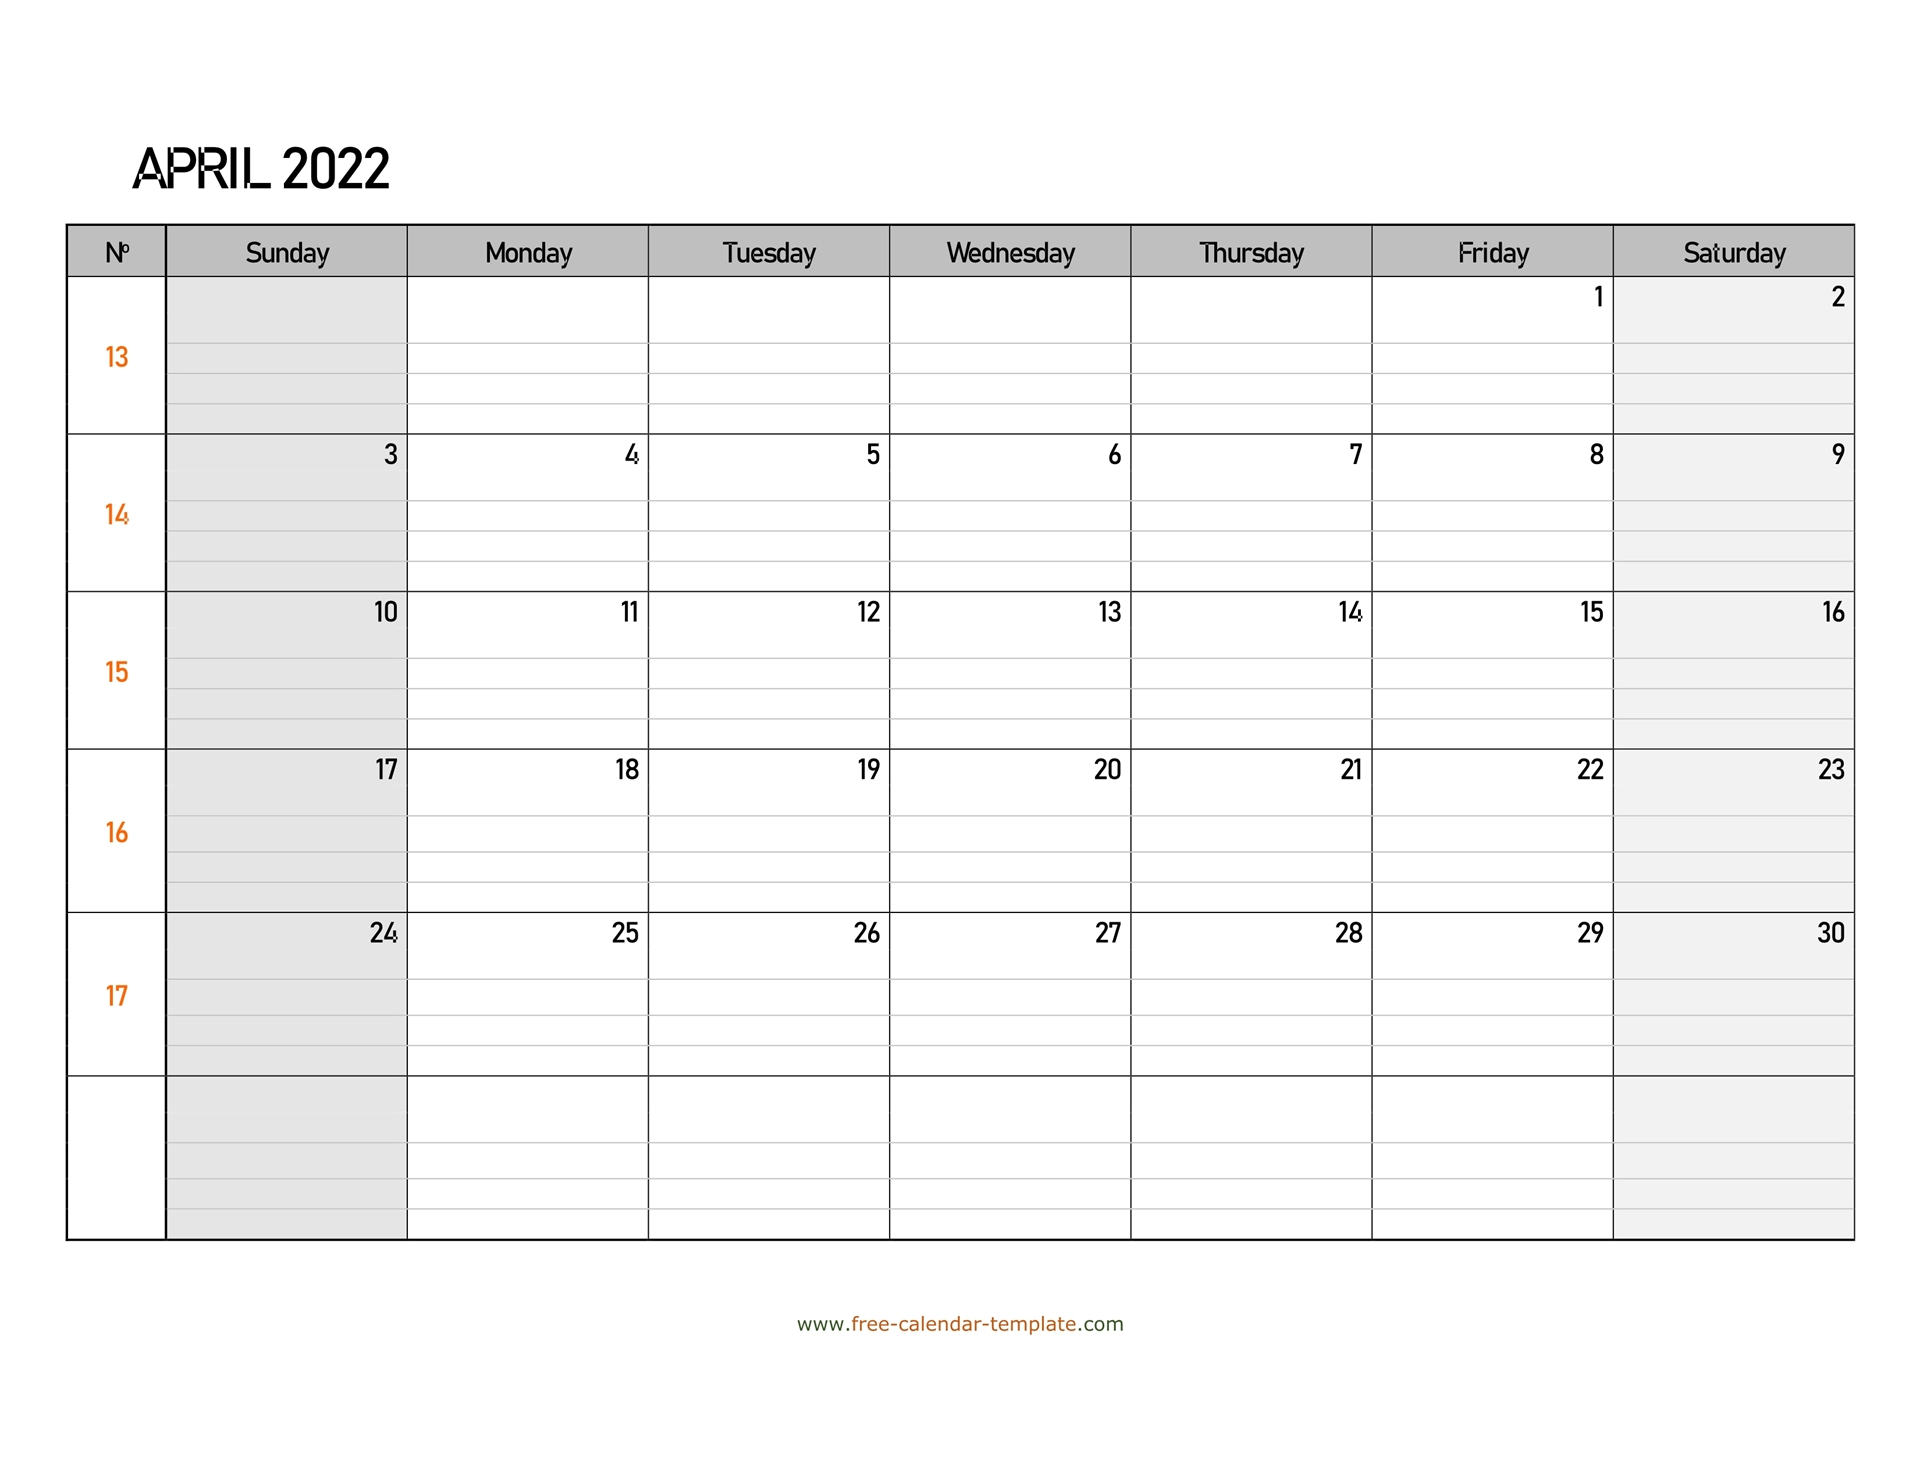 April 2022 Calendar Free Printable With Grid Lines In Calendars March April And May 2022 Calendar